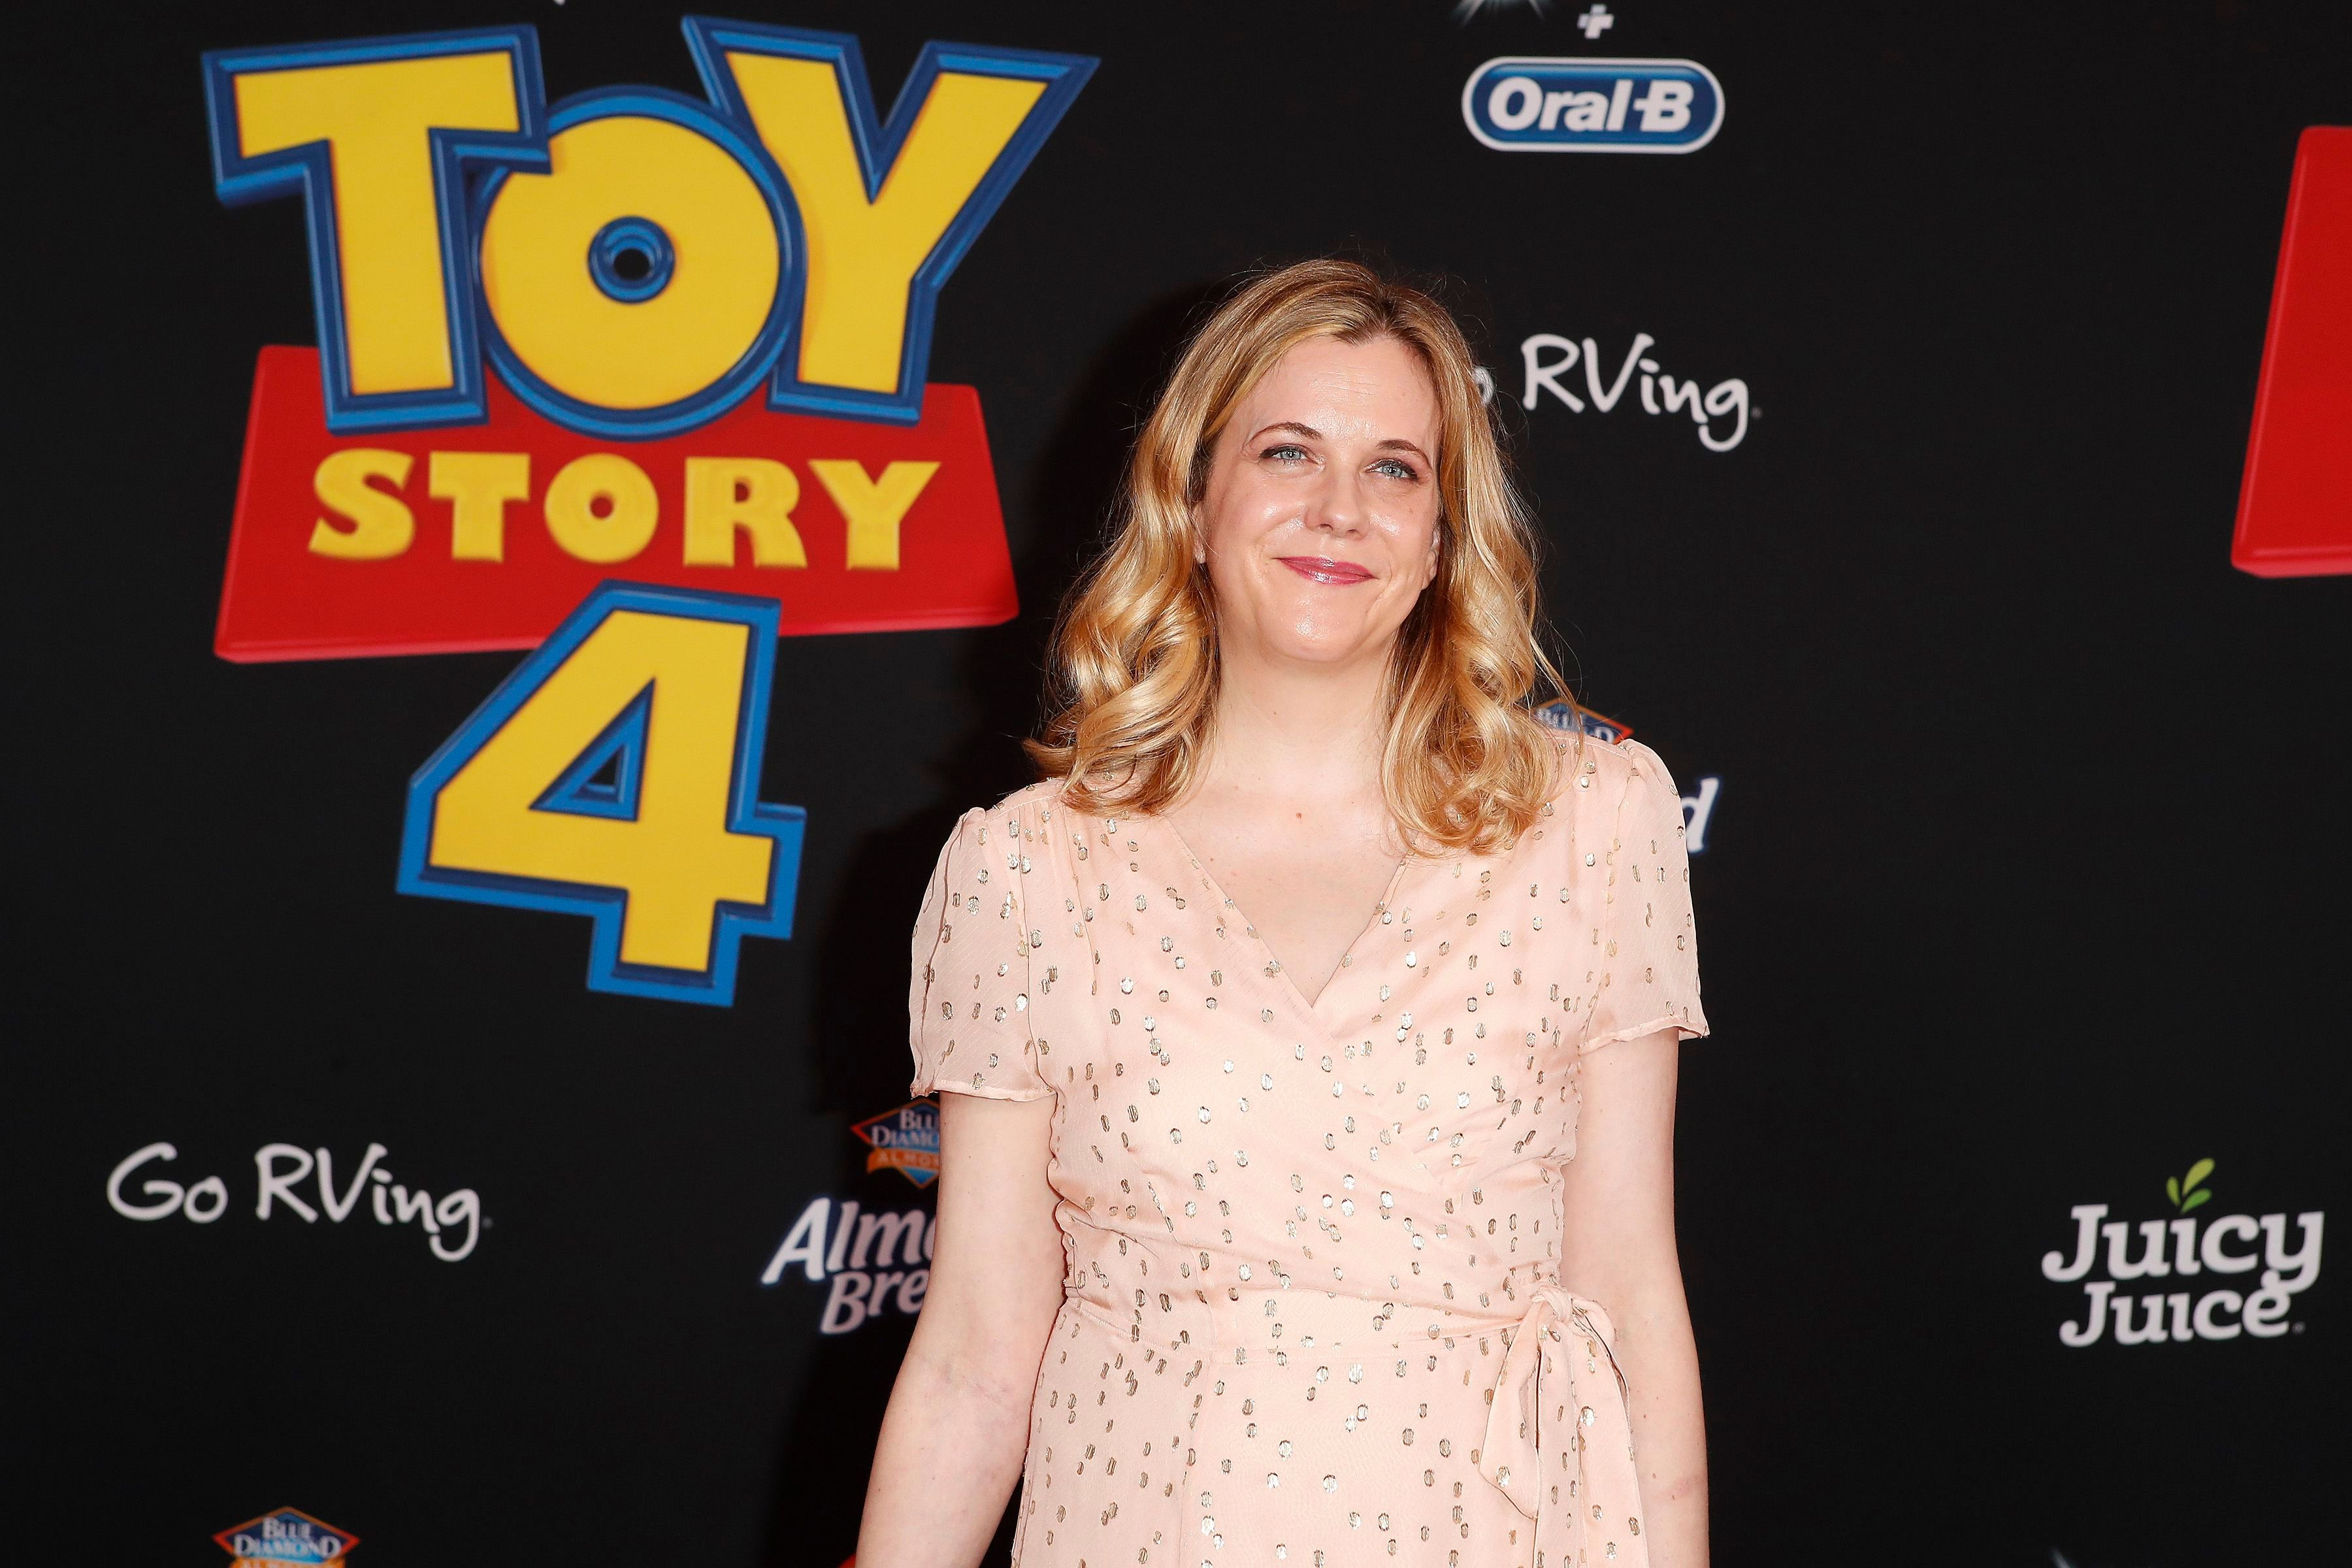 US writer Stephany Folsom arrives for the world premiere of 'Toy Story 4' at the El Capitan Theatre in Hollywood, Los Angeles, California, USA, 11 June 2019. The movie opens in the USA on 21 June 2019.World premiere of 'Toy Story 4' in Hollywood, Los Angeles, USA - 11 Jun 2019